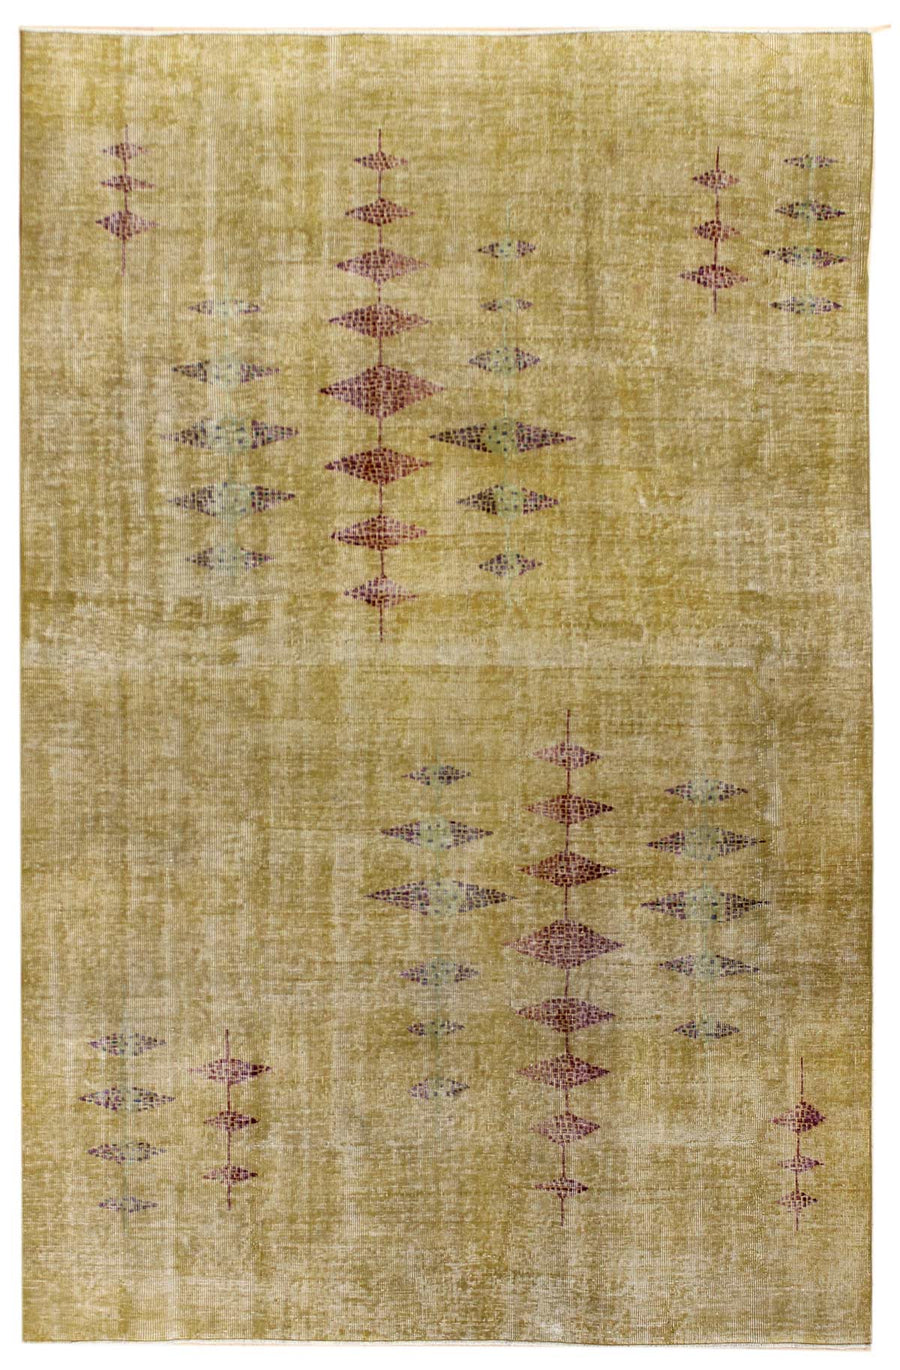 DECO HANDKNOTTED RUG, J45423